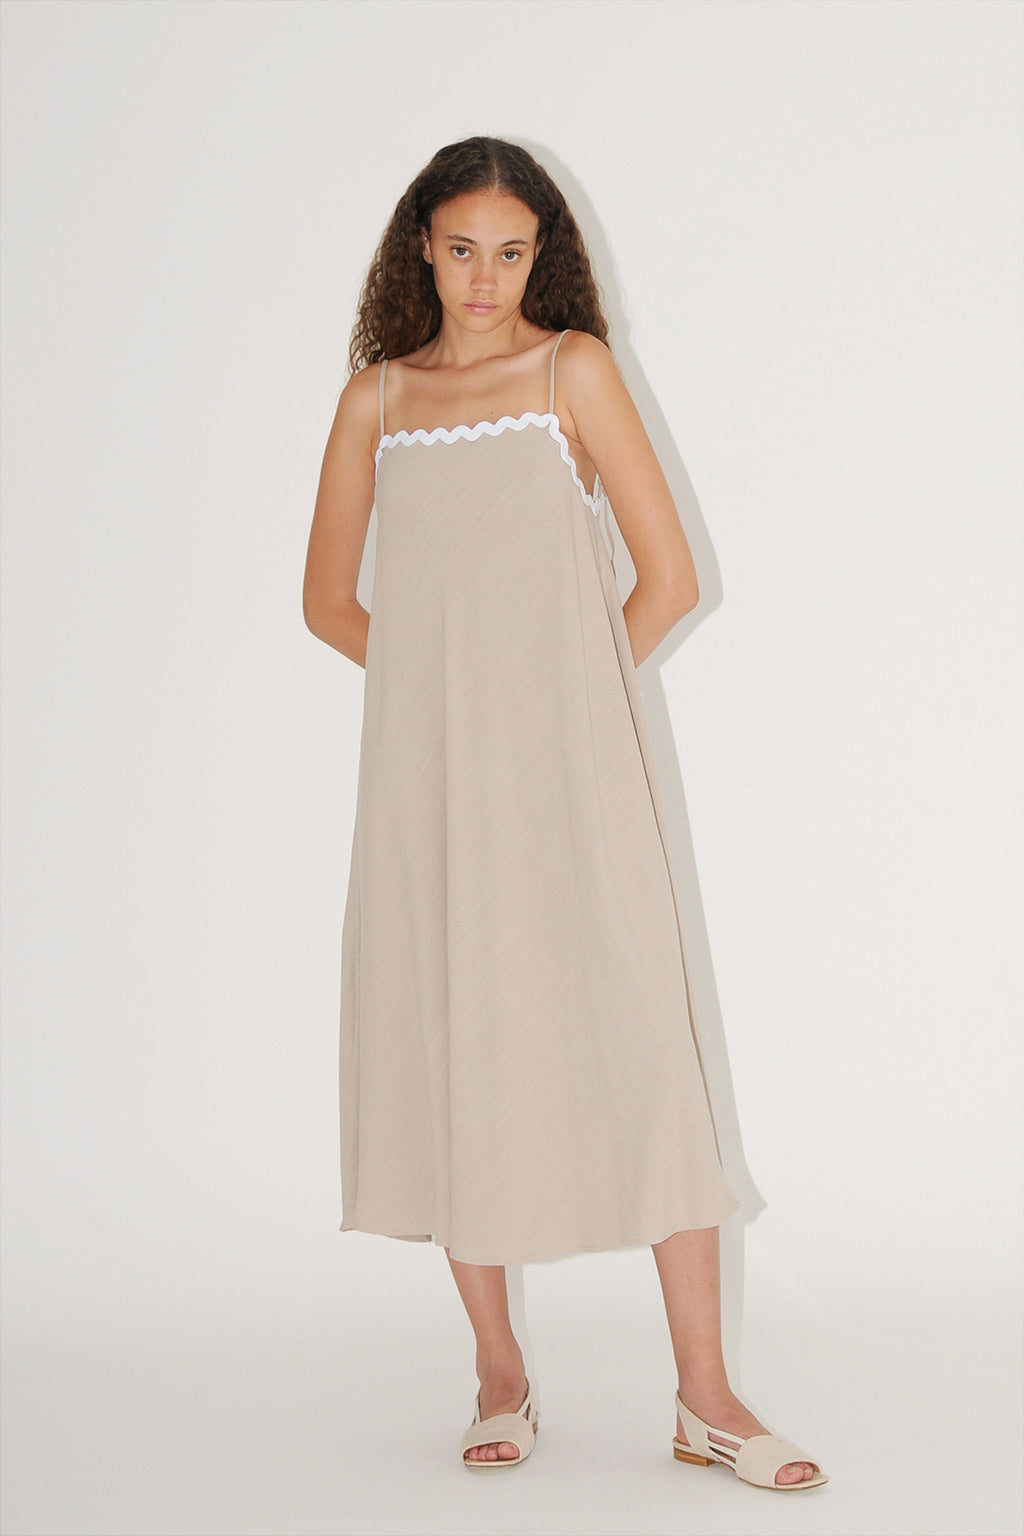 Altea Dress - Stone